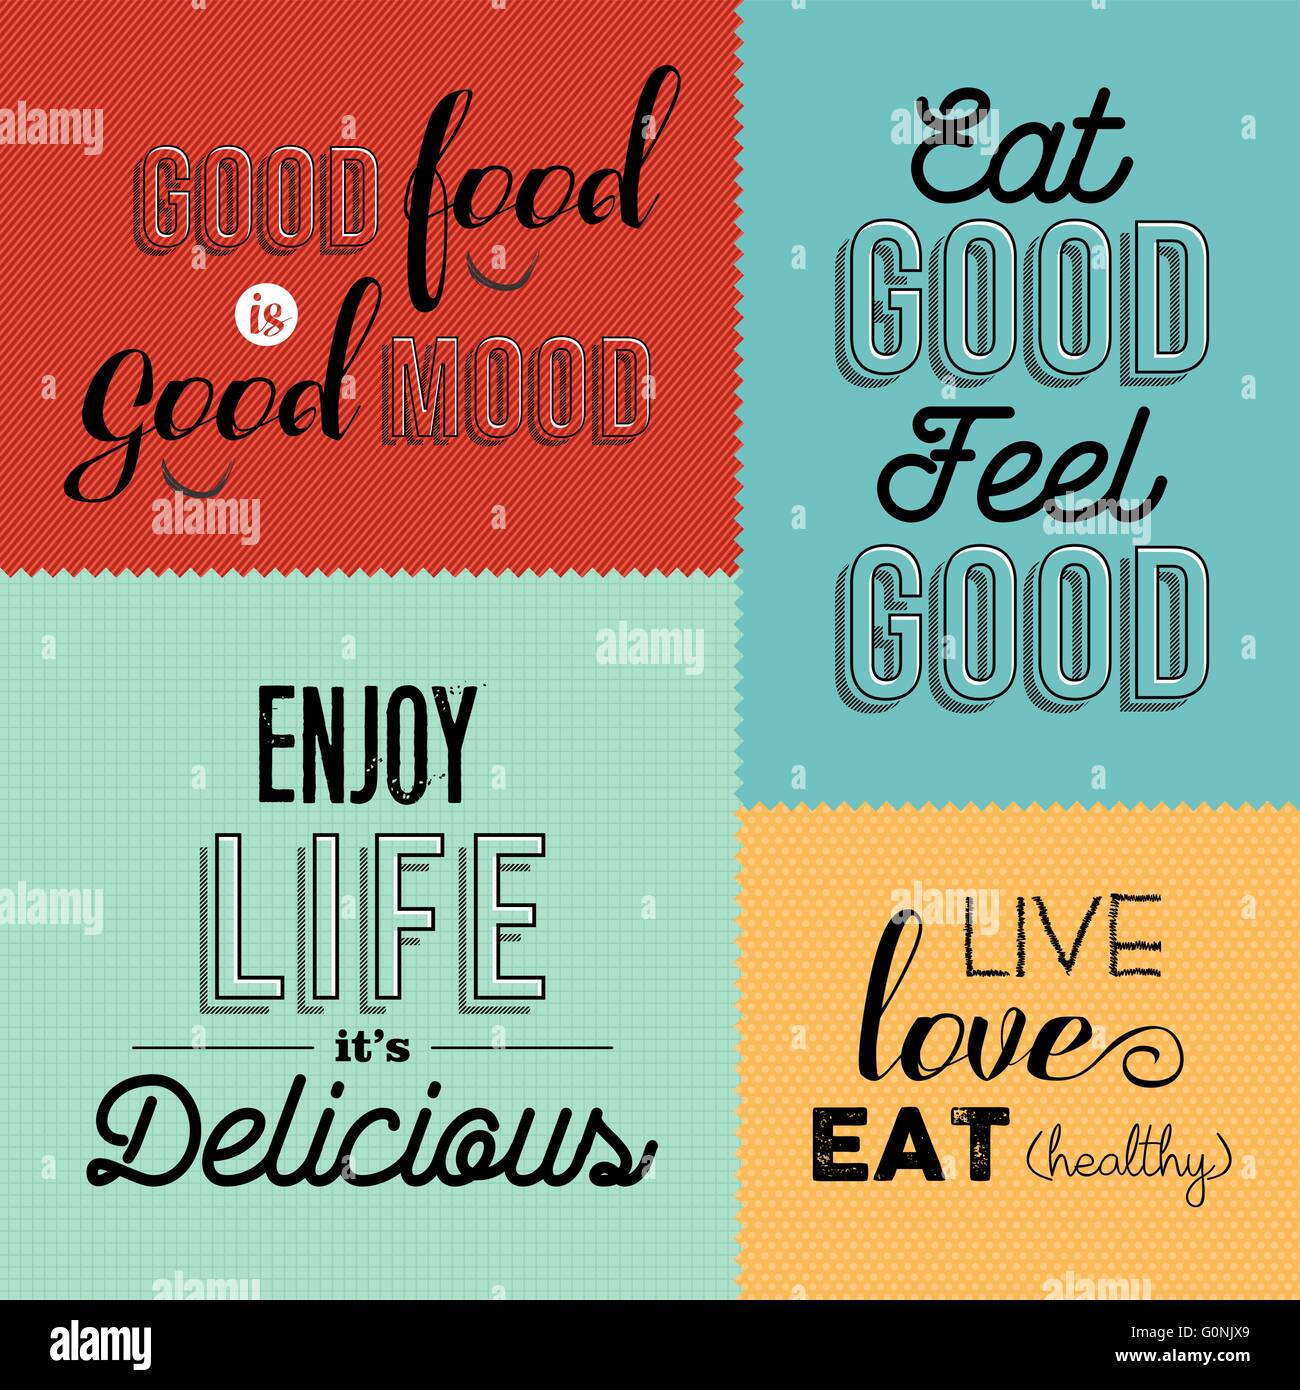 Feel Good Quotes Eat Good Feel Good Inspirational Quote On Vegetable Background